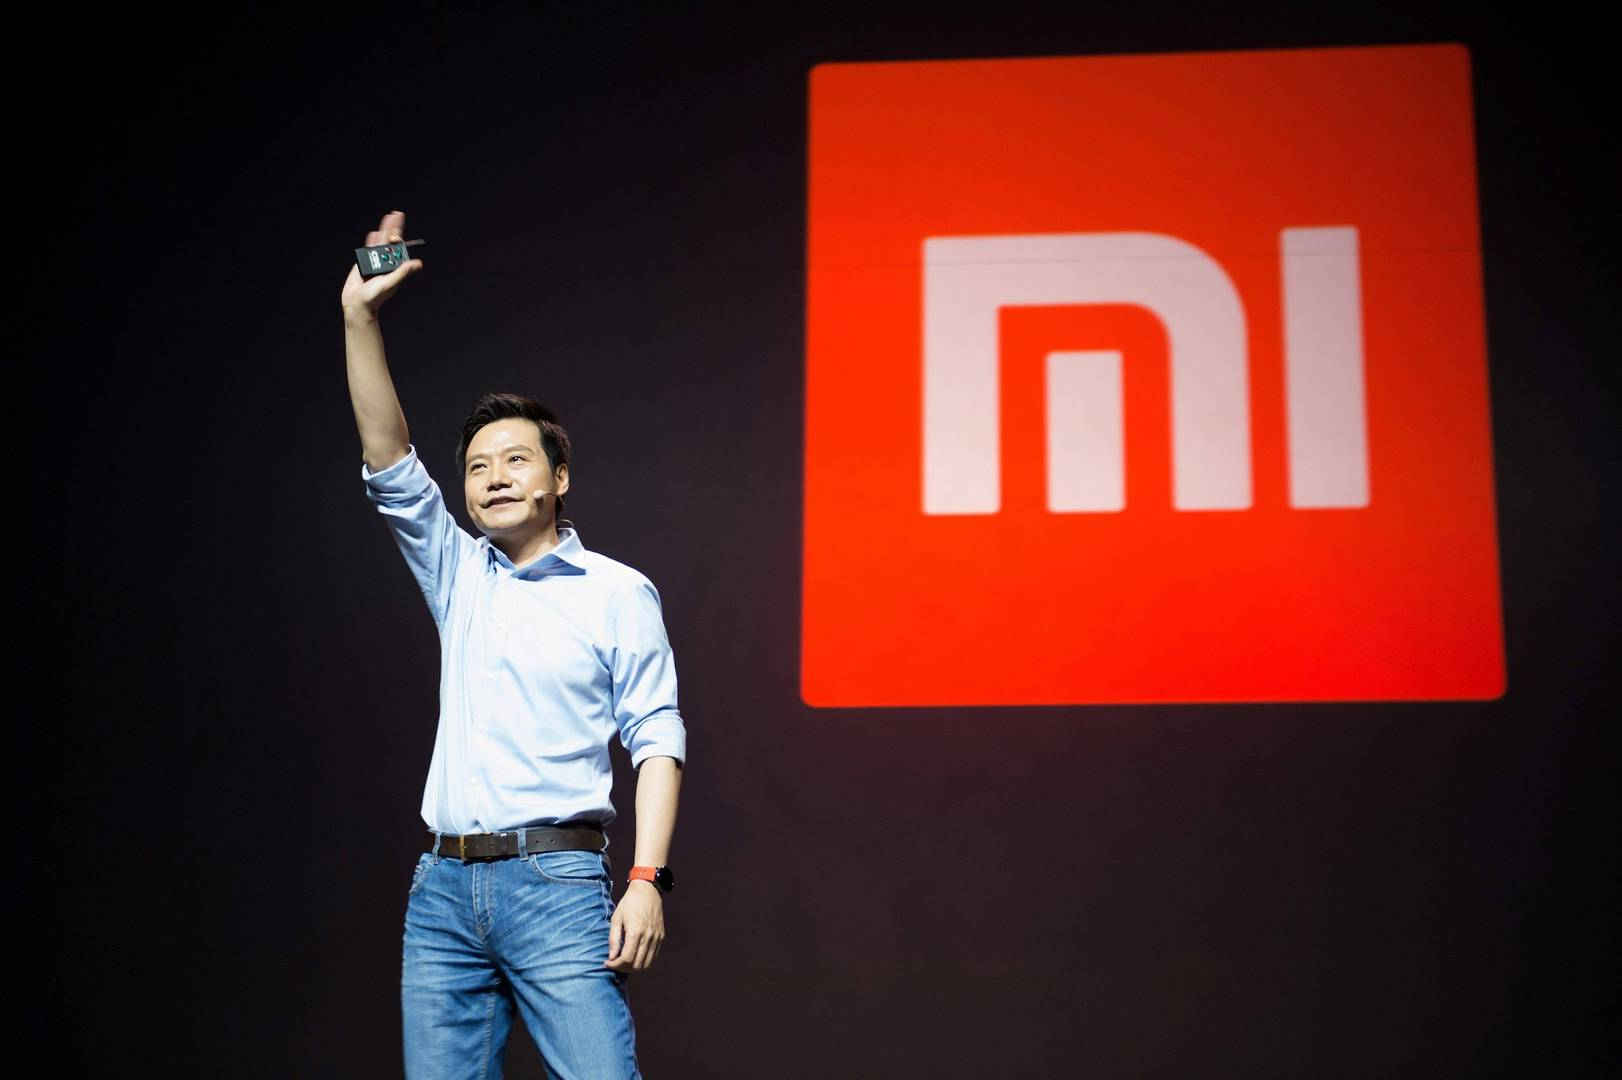 A fan sued Xiaomi for not keeping its promise to dine with its co-founder, Lei Jun